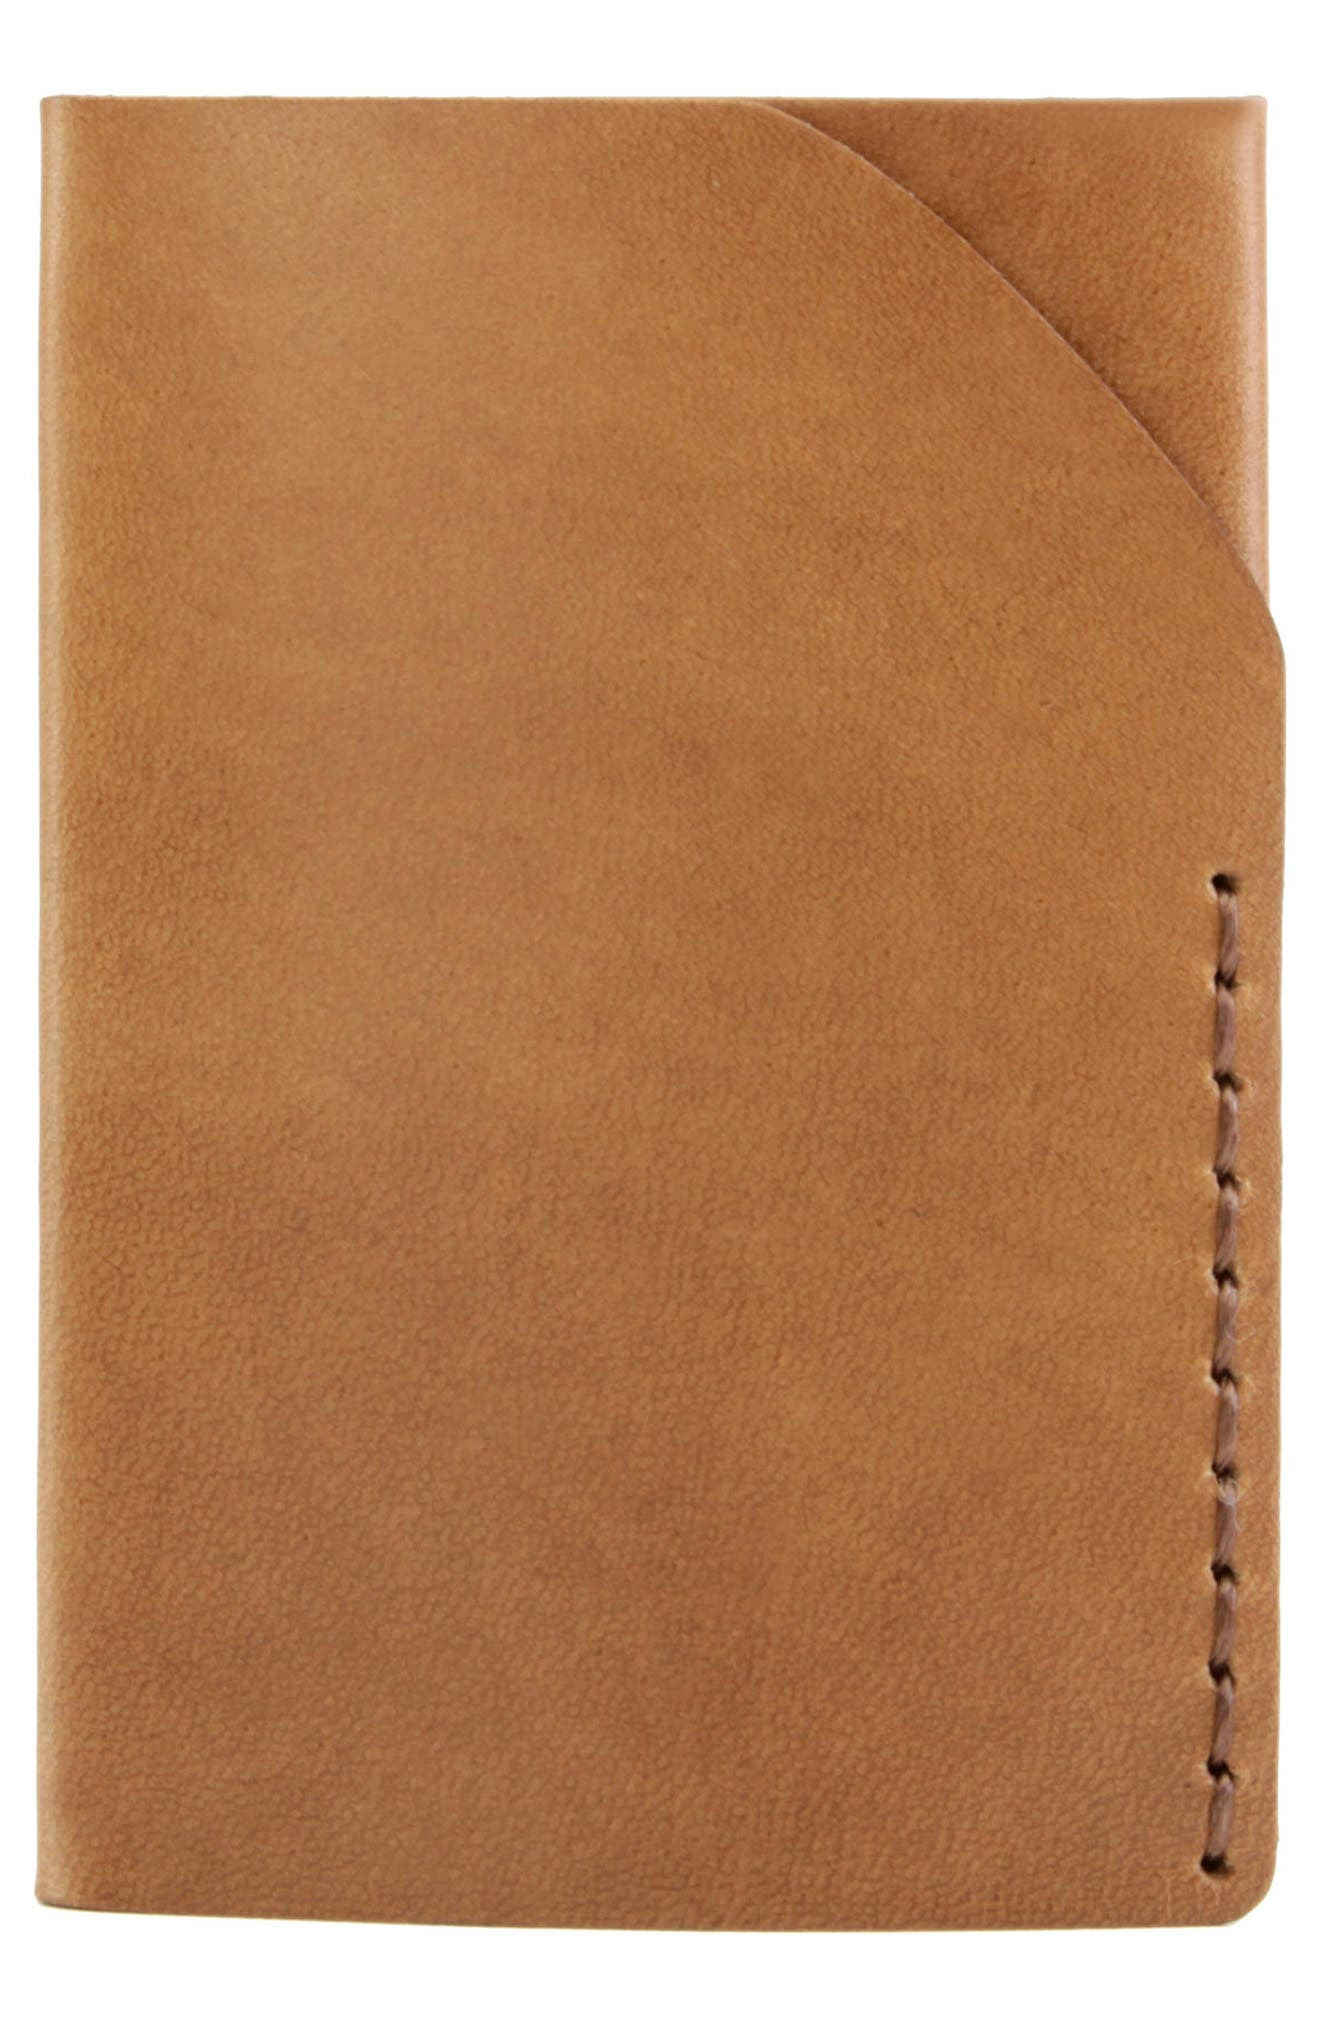 No. 2 Leather Card Case